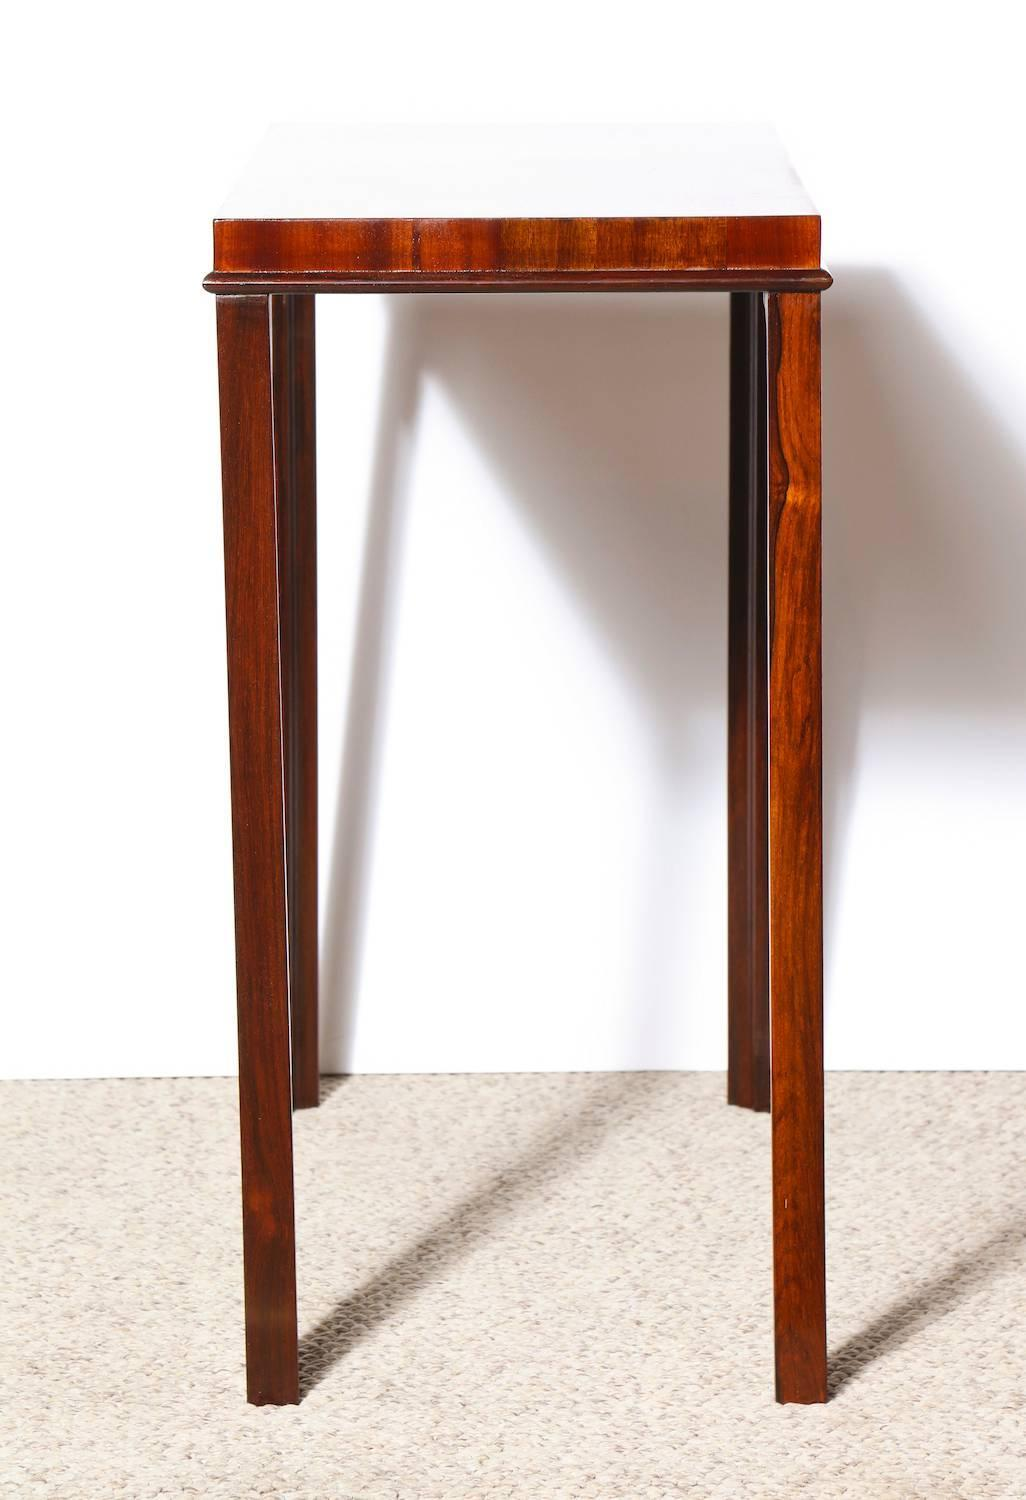 Unique console table by eugene schoen for sale at 1stdibs for Unusual tables for sale